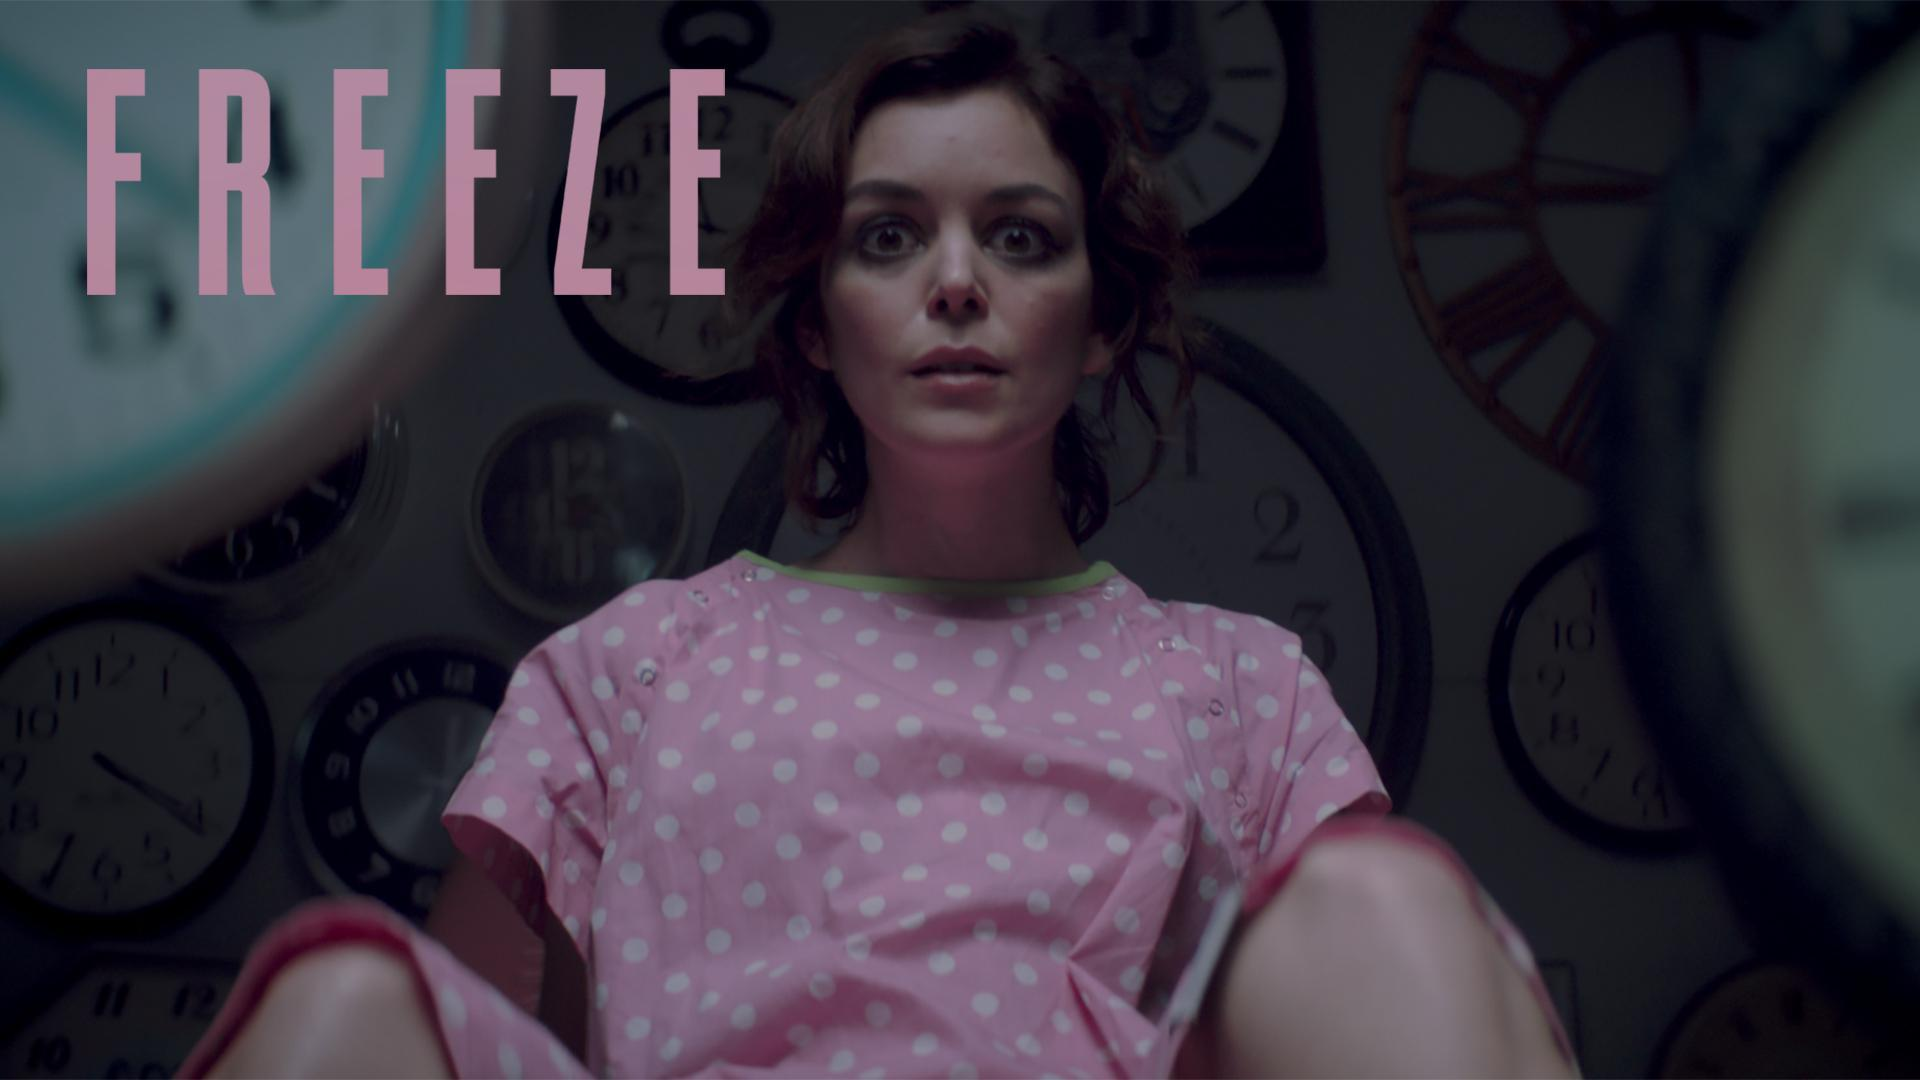 Trailer for Freeze - AD